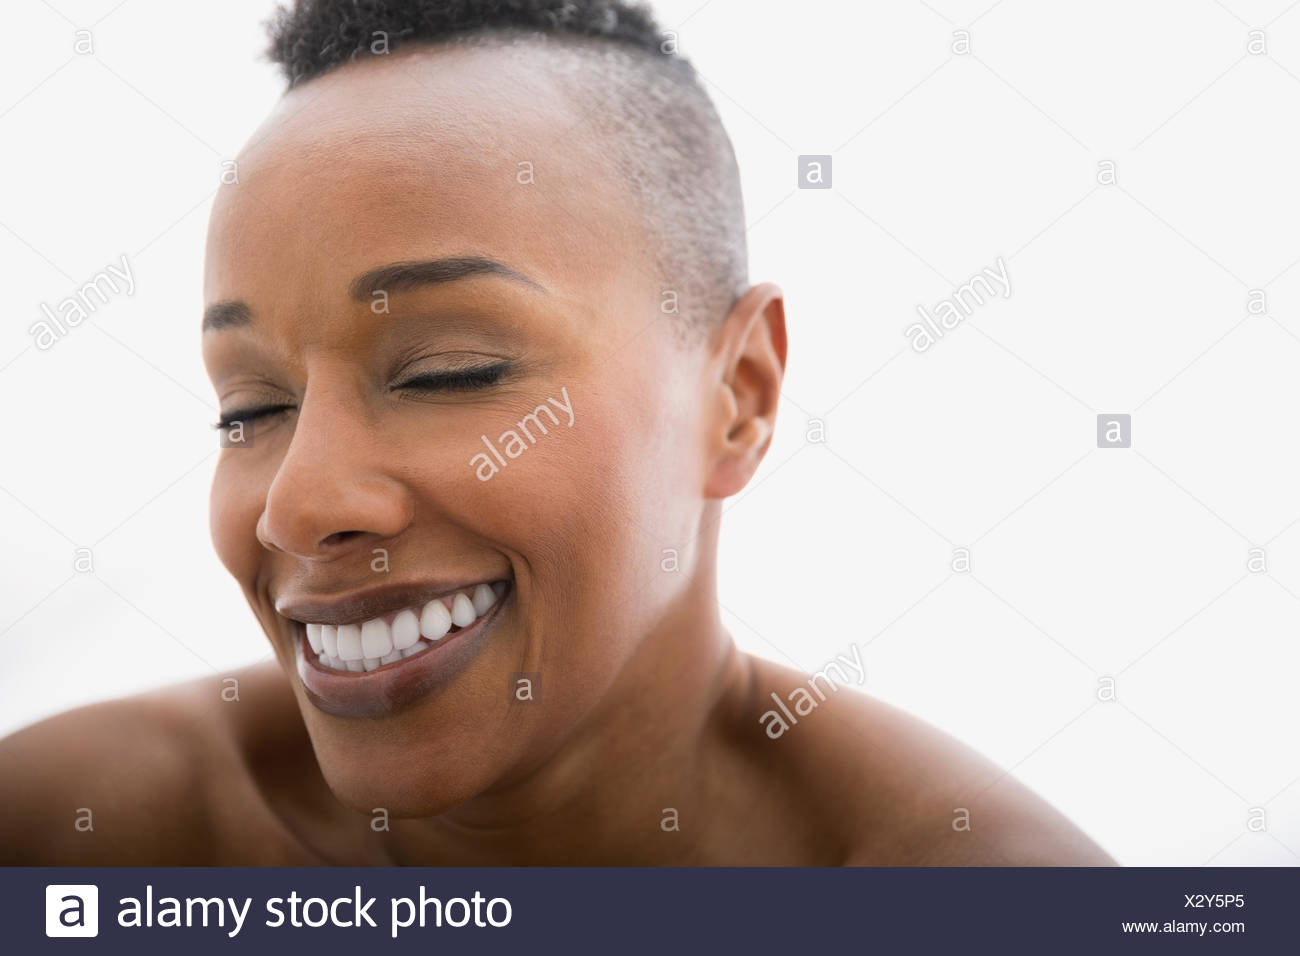 Close up of woman laughing with eyes closed Photo Stock